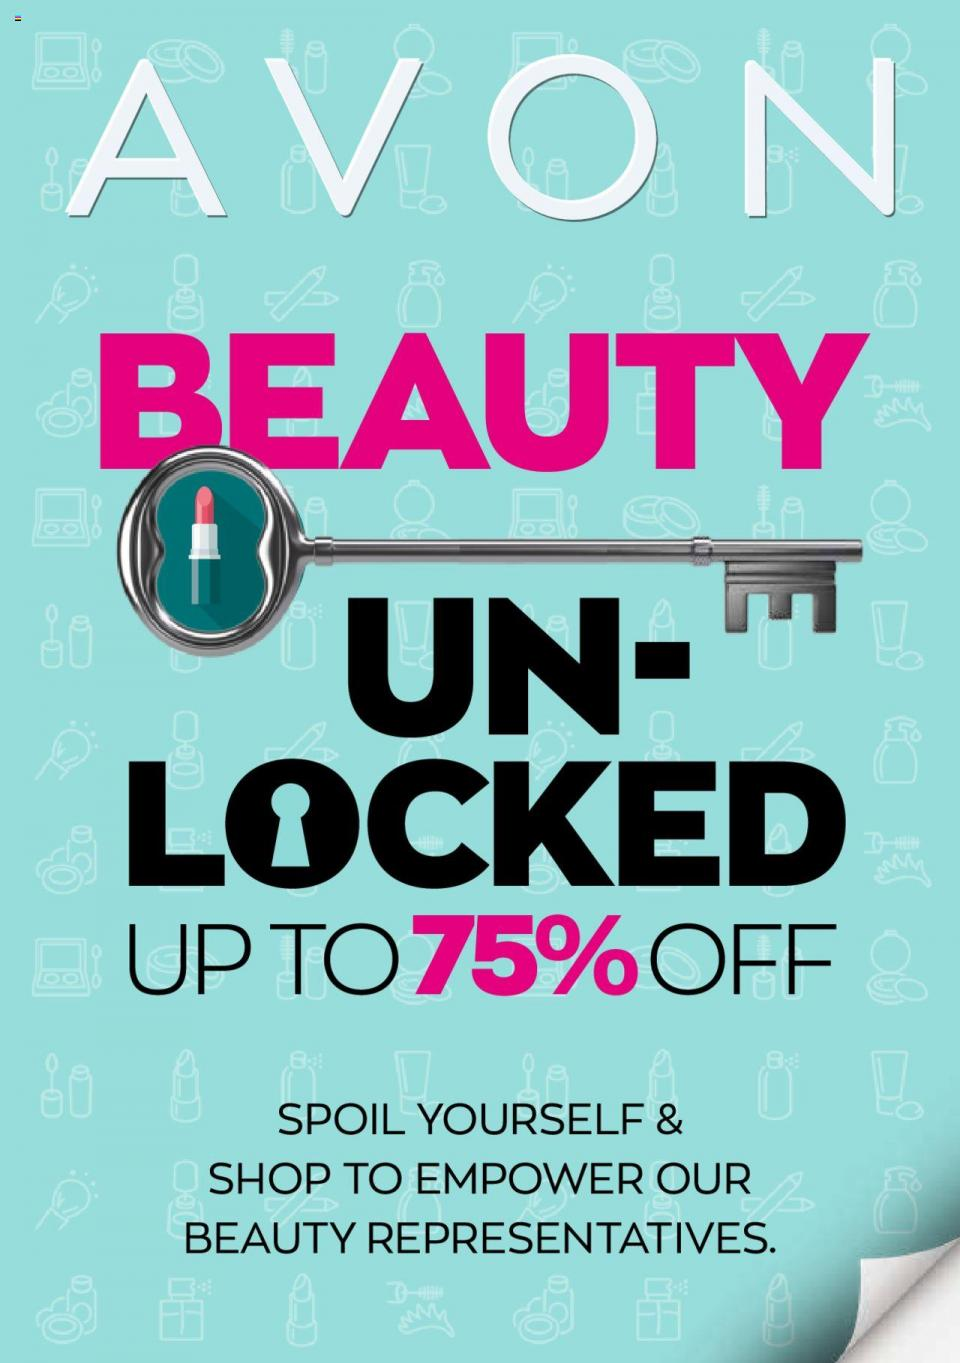 avon brochure beauty unlocked 19 may 2020